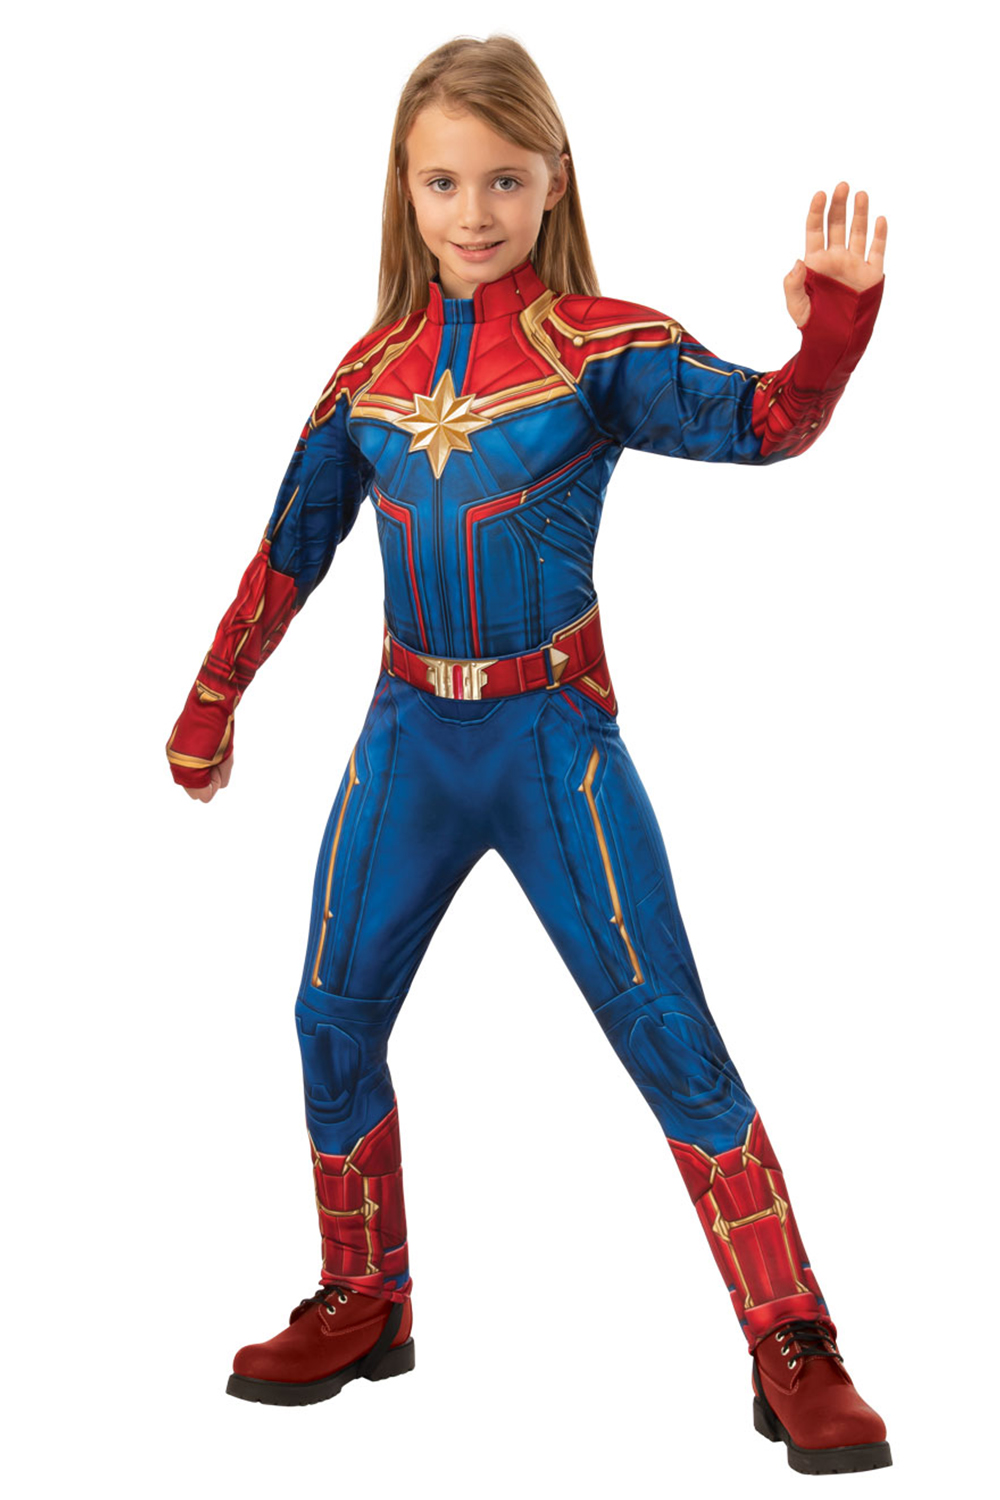 Rubies Kids Official Deluxe Captain Marvel Kree Or Hero 3d Fancy Dress Costume Ebay The captain marvel kree suit looks like it came right out of the screen so get ready to bring marvel's newest creation to life from the silver screen to in person this halloween! ebay